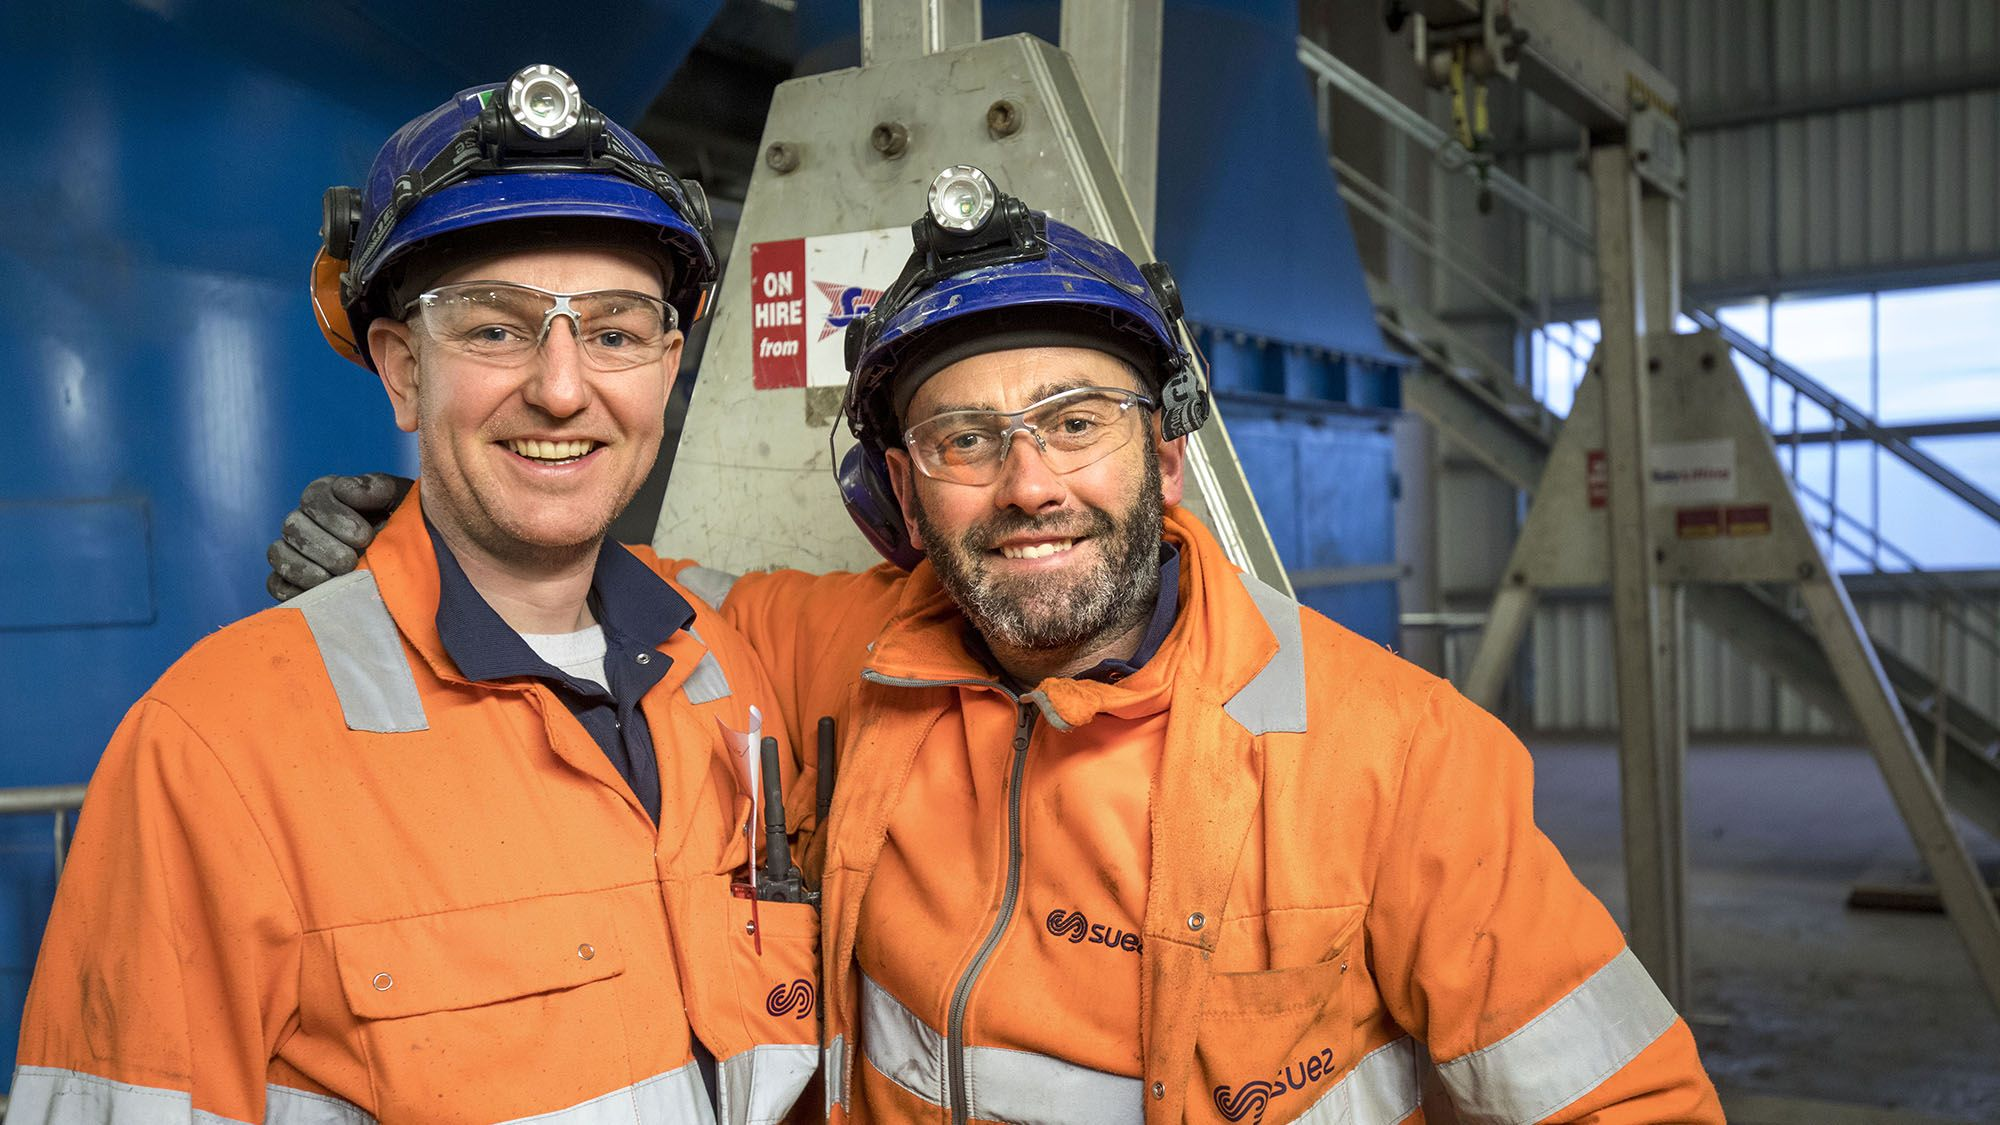 SUEZ technicians at Wilton energy from waste facility